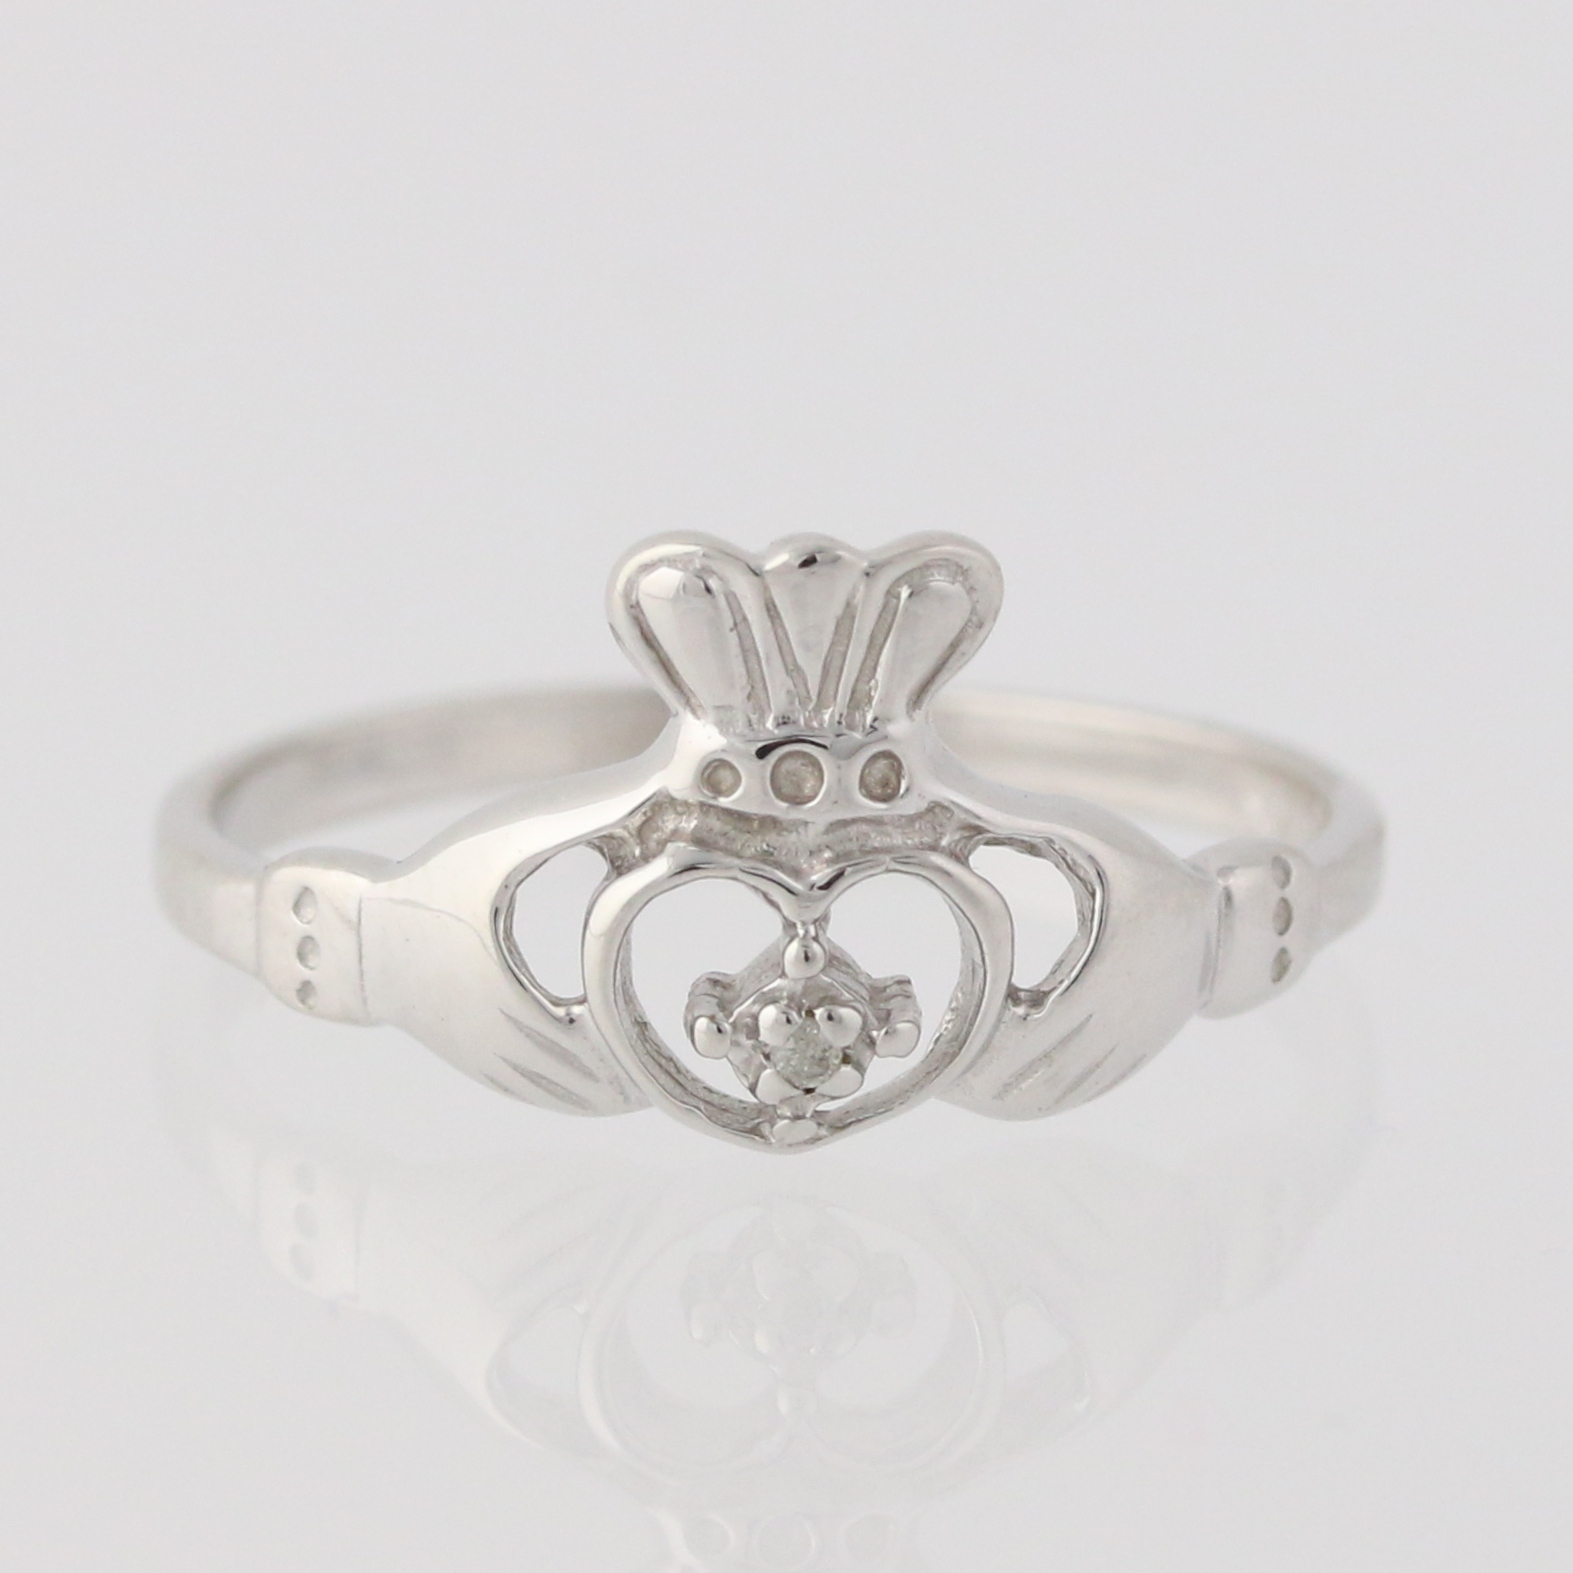 new diamond accented claddagh ring 10k white gold irish. Black Bedroom Furniture Sets. Home Design Ideas